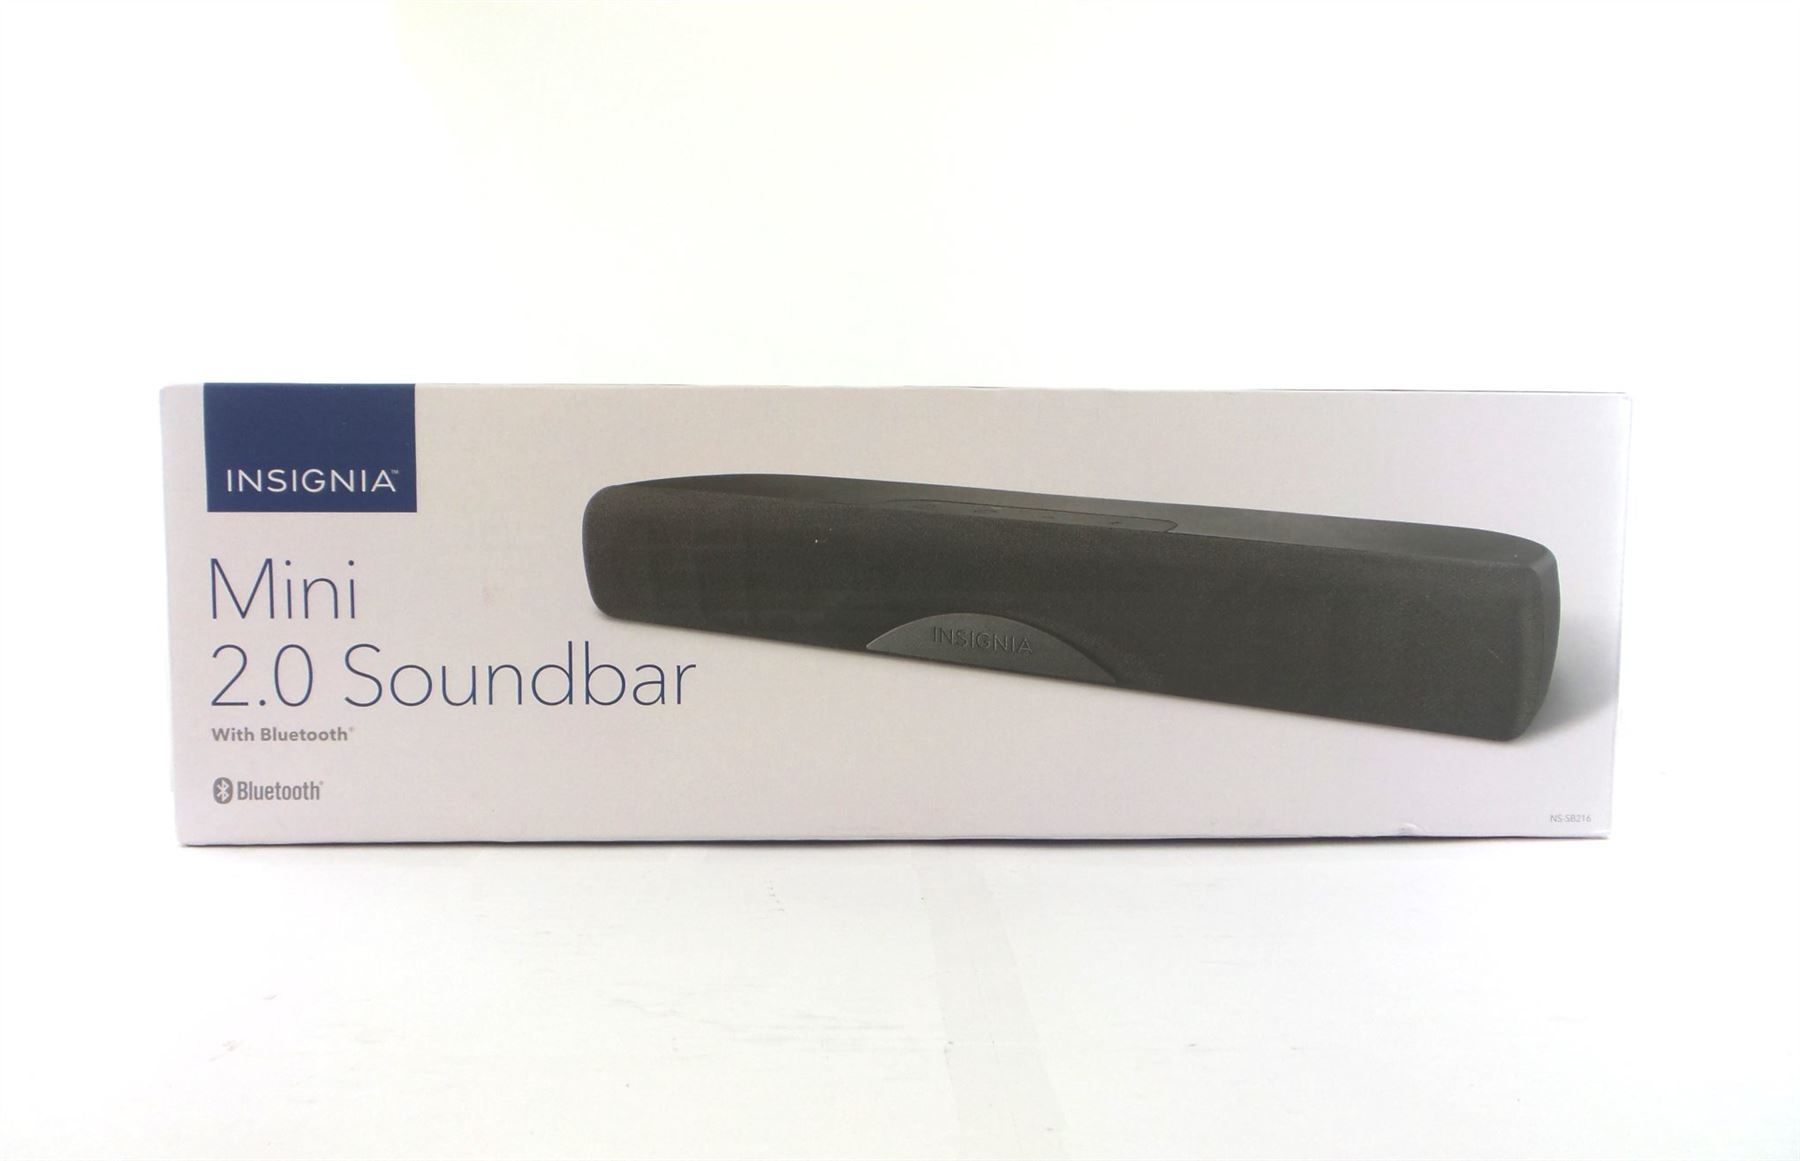 insignia mini 2.0 soundbar manual